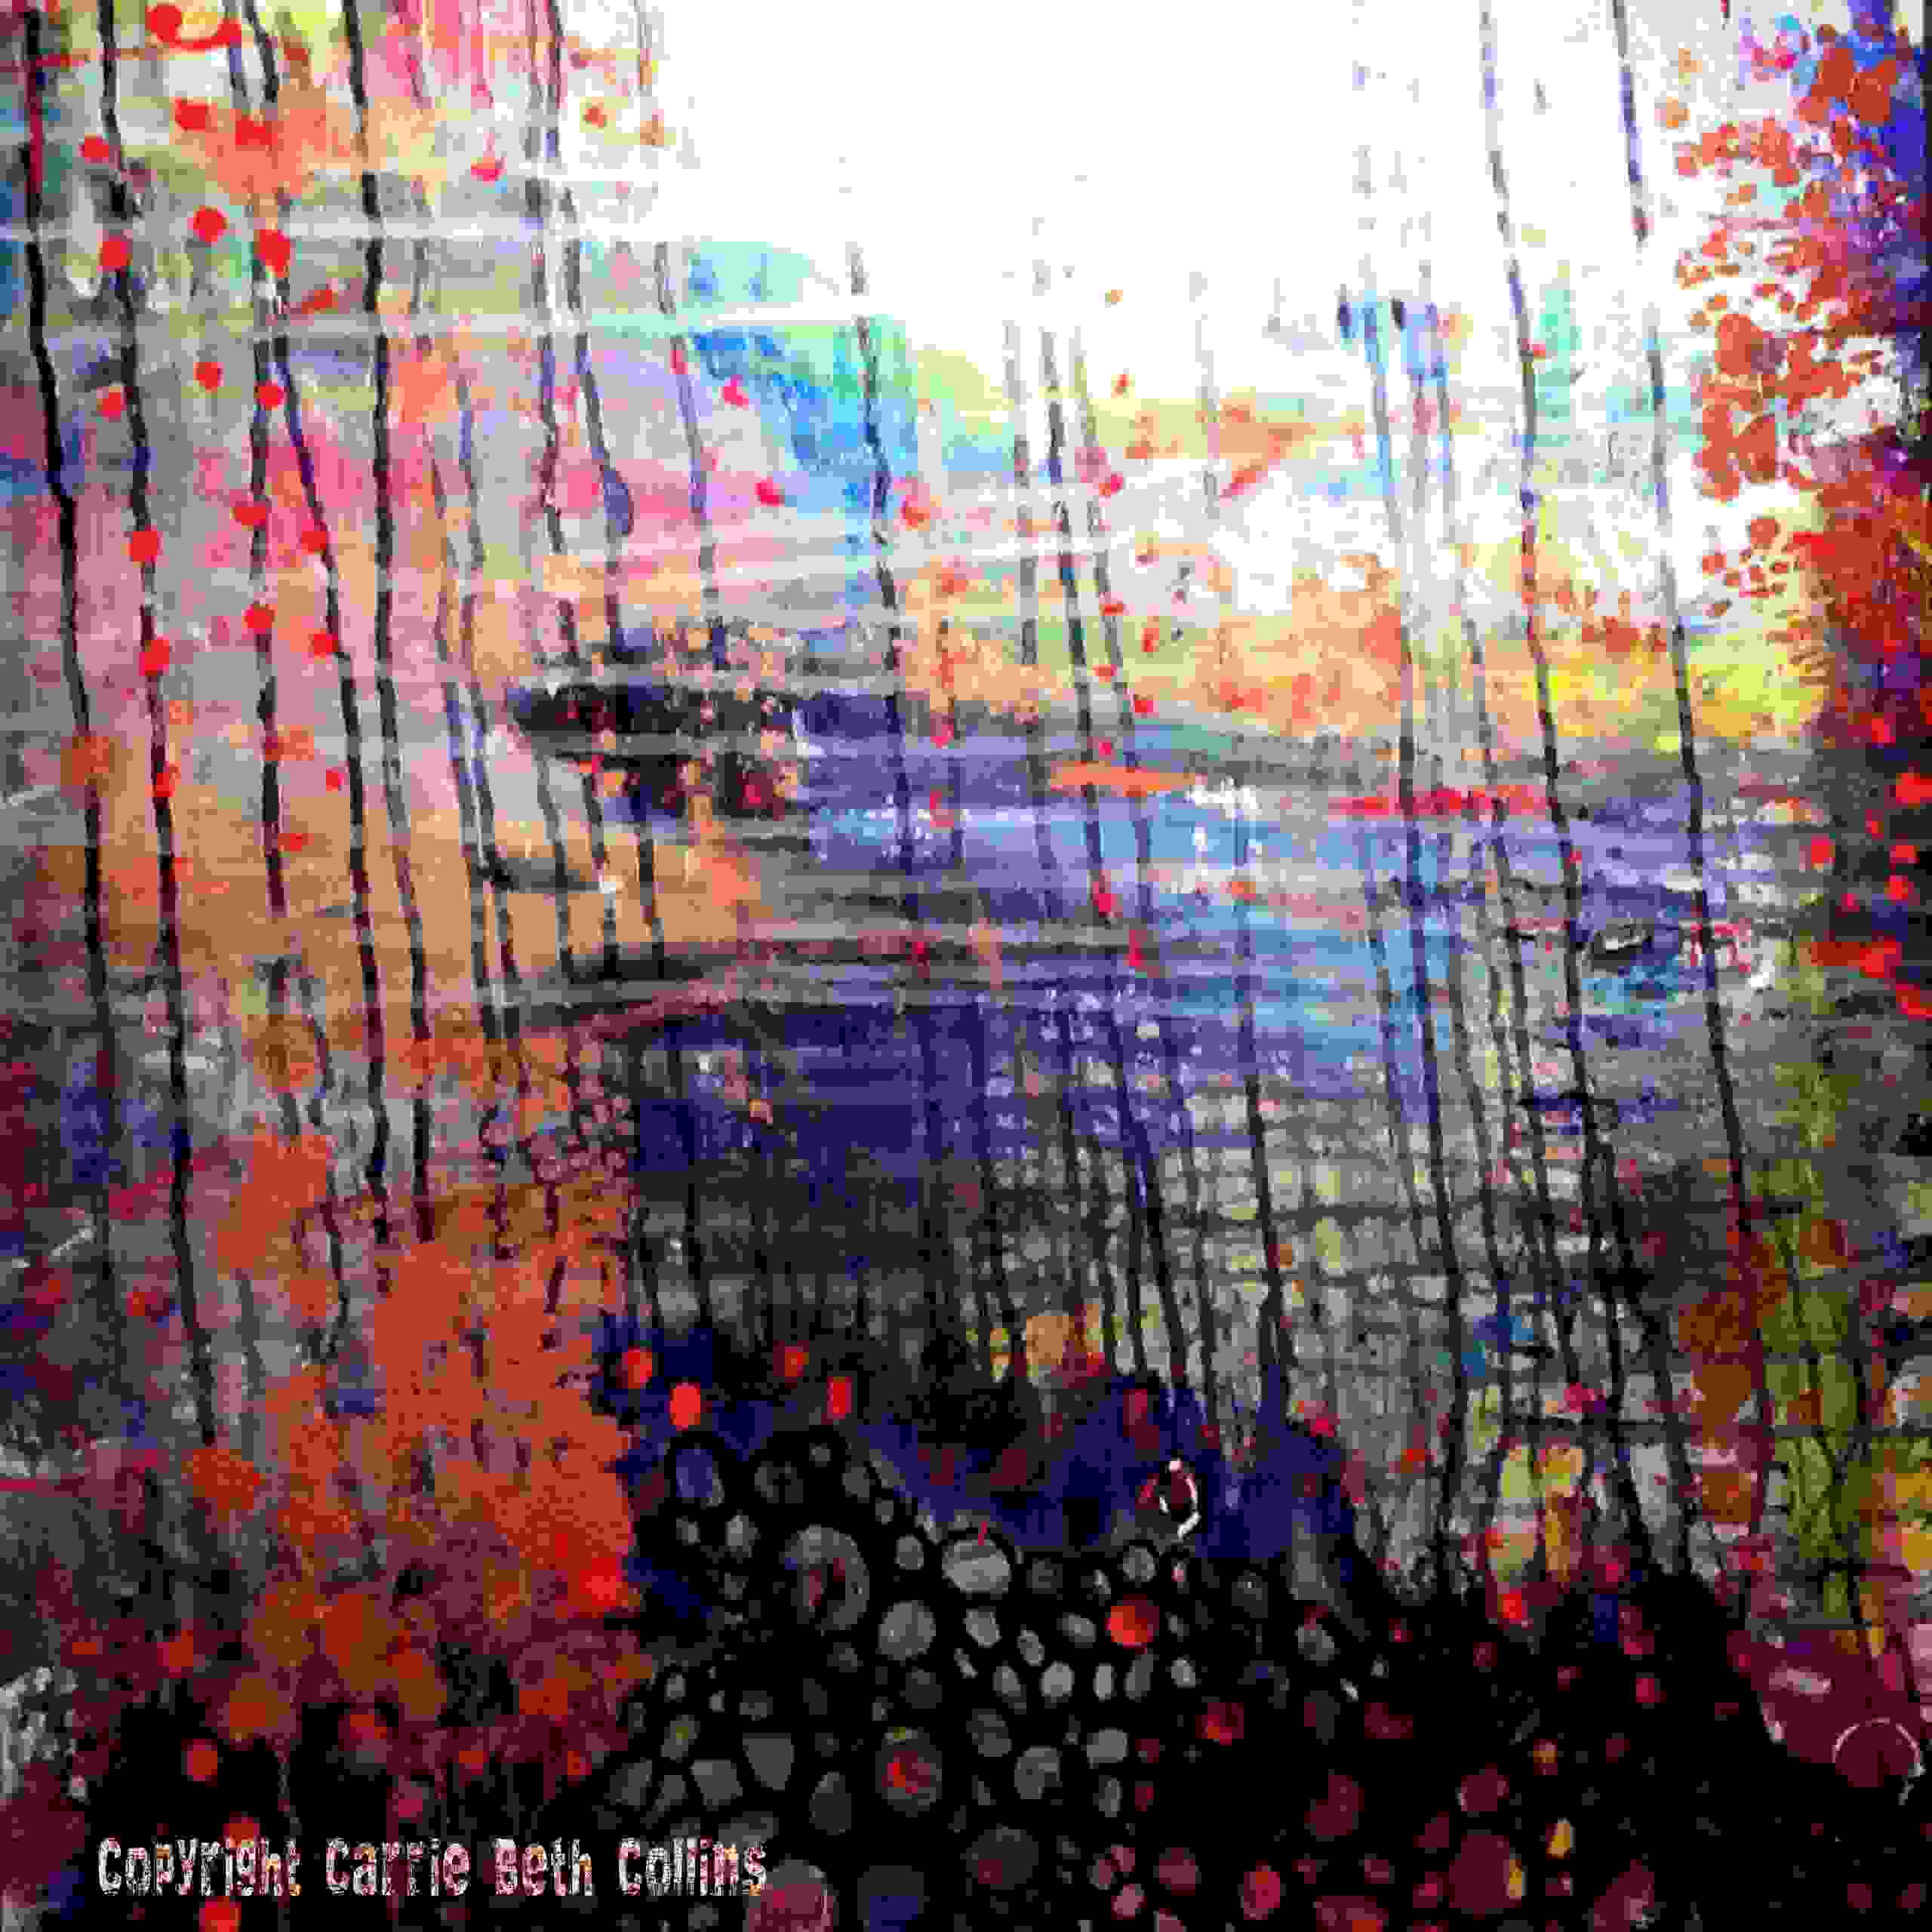 Abstract Art, River, Water, dream, Contemporary painting, Abstract painting, Carrie Beth Collins